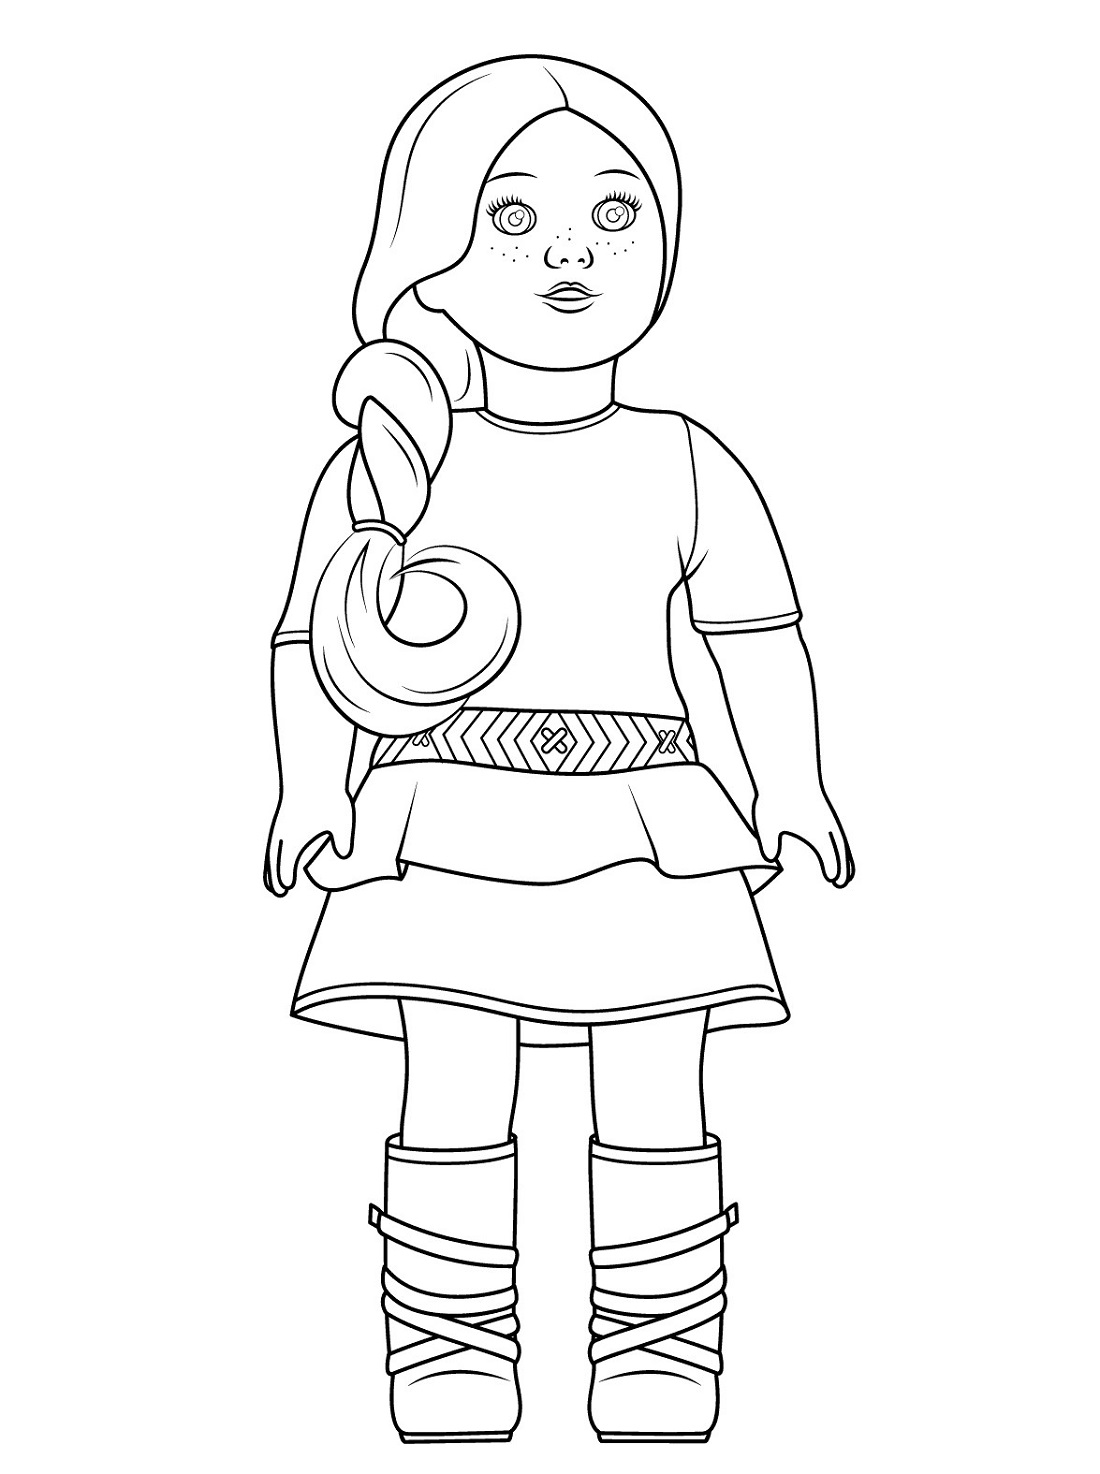 american girl doll coloring pages to print american girl doll coloring pages to download and print doll to american girl pages print coloring